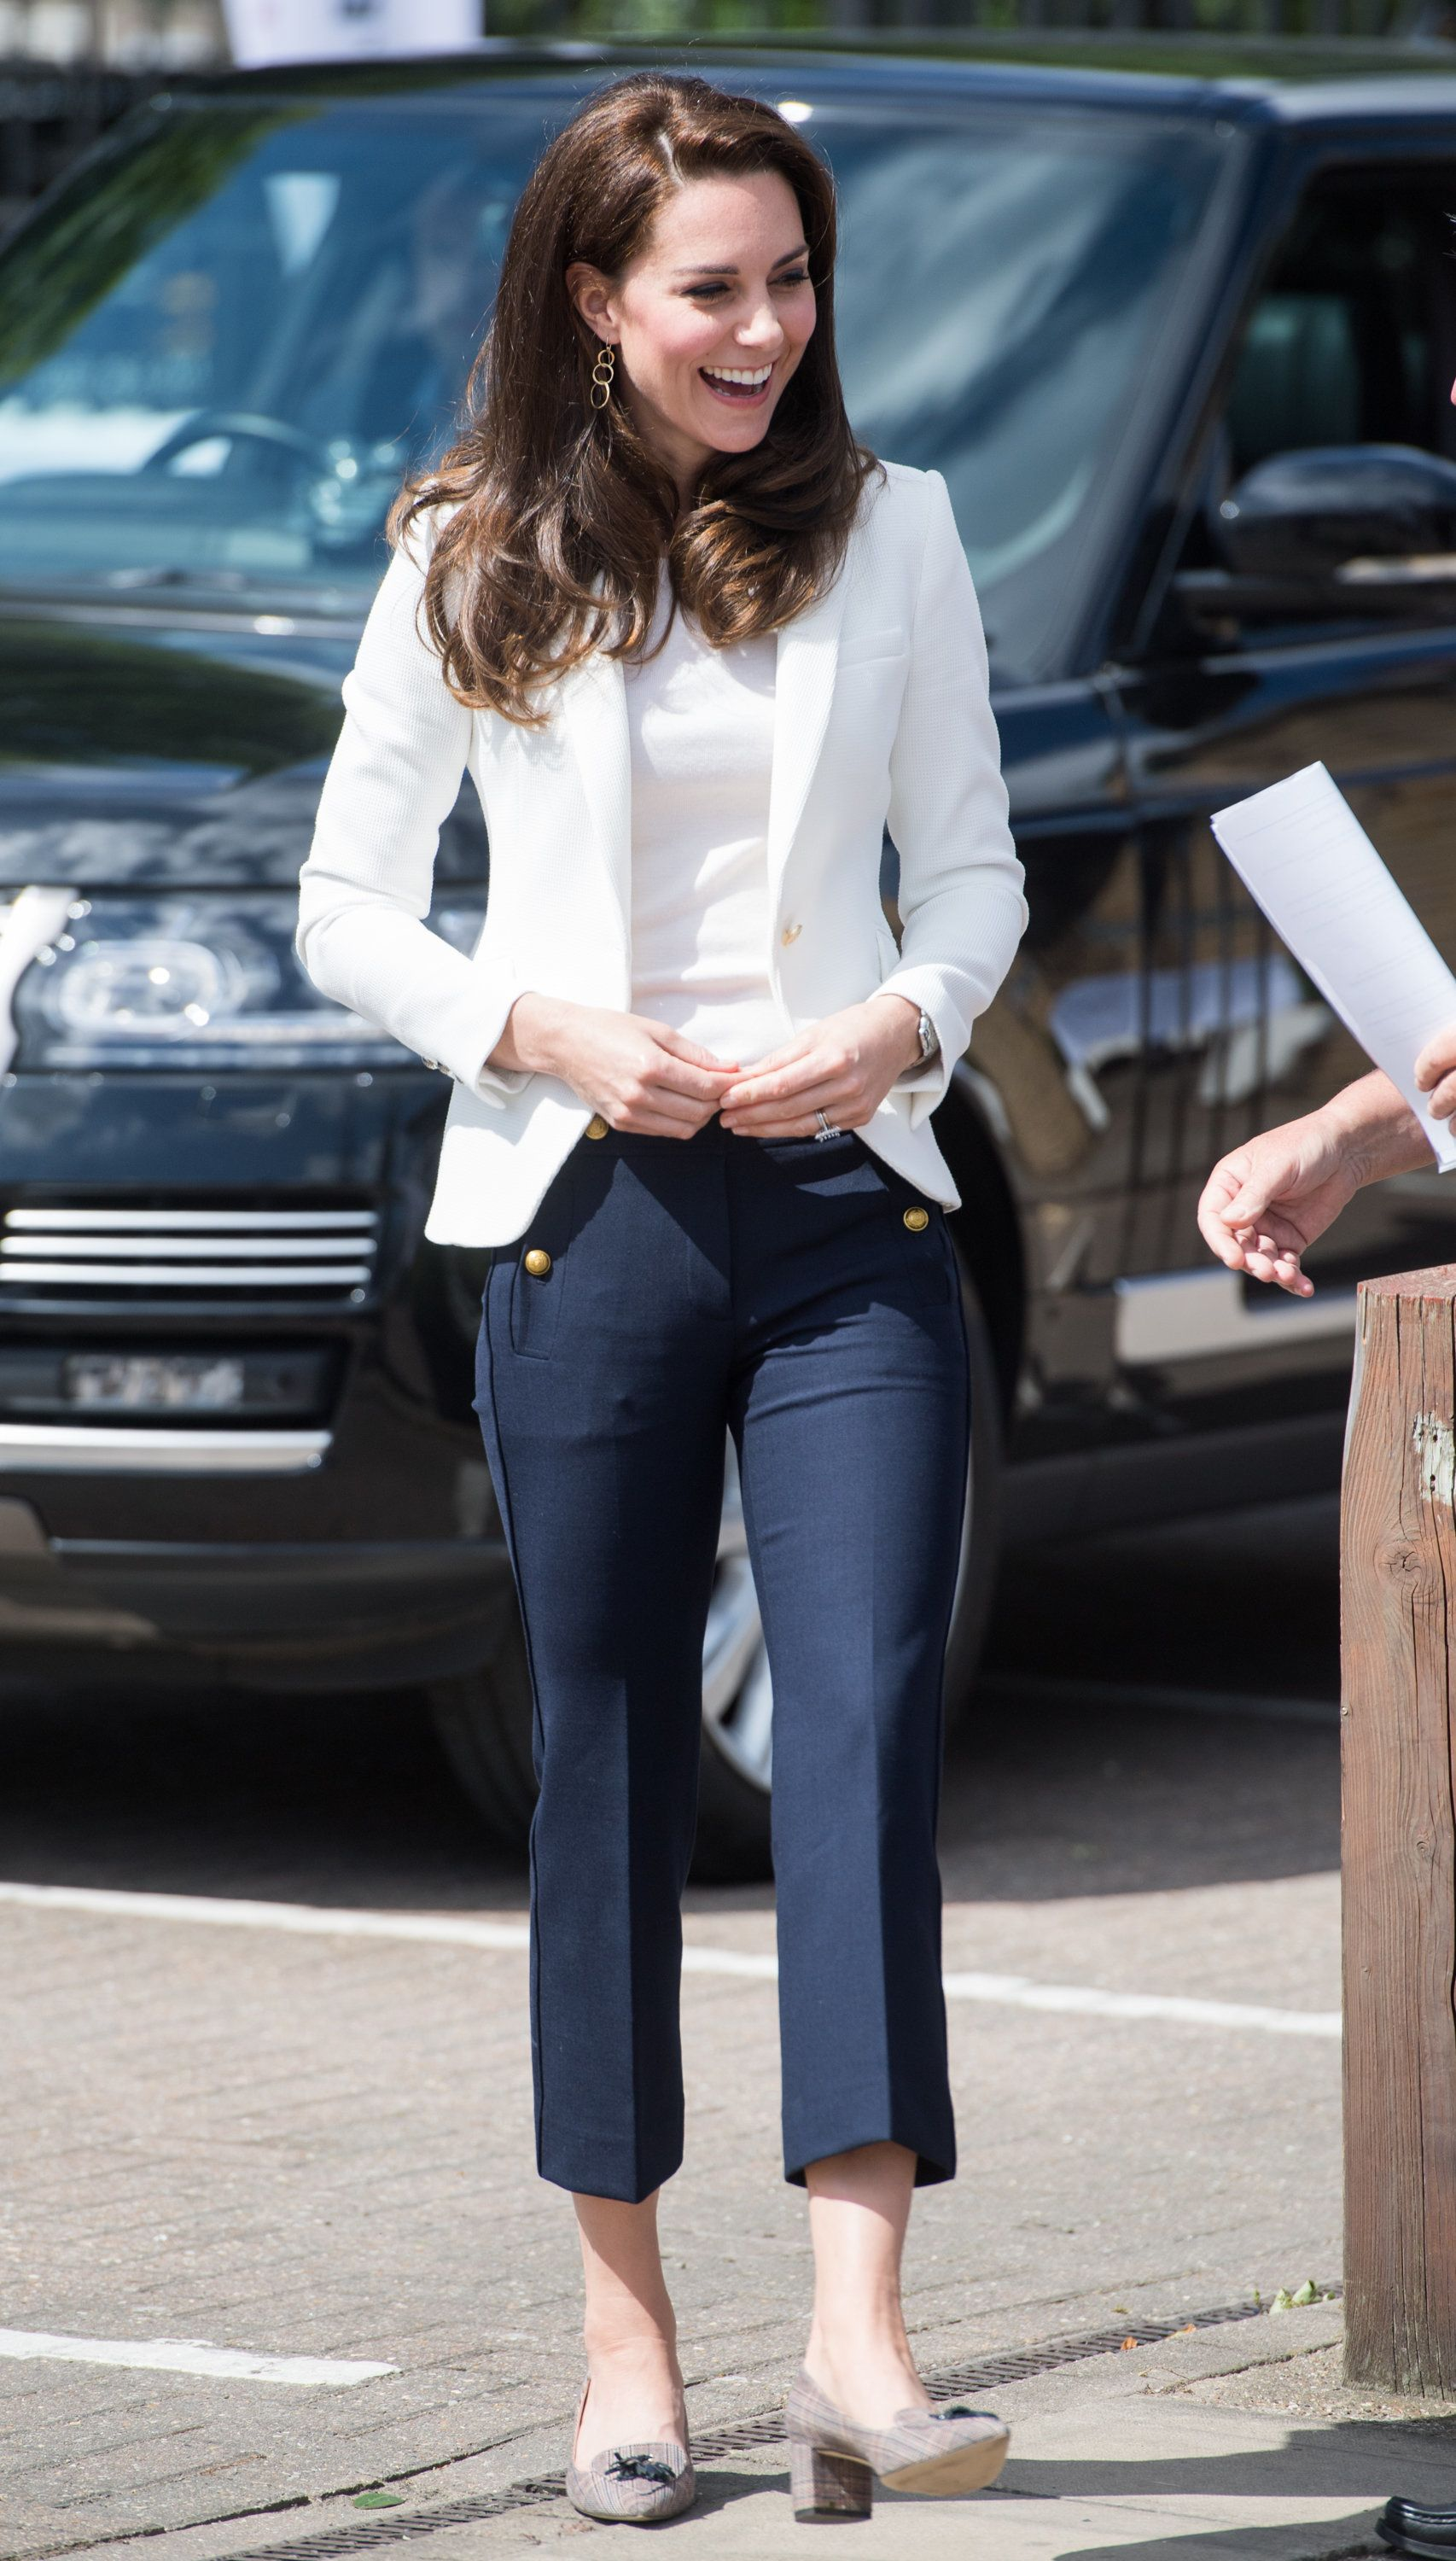 Kate Middletons 50 Zara Pants Are Going to Sell Out Kate Middletons 50 Zara Pants Are Going to Sell Out new photo